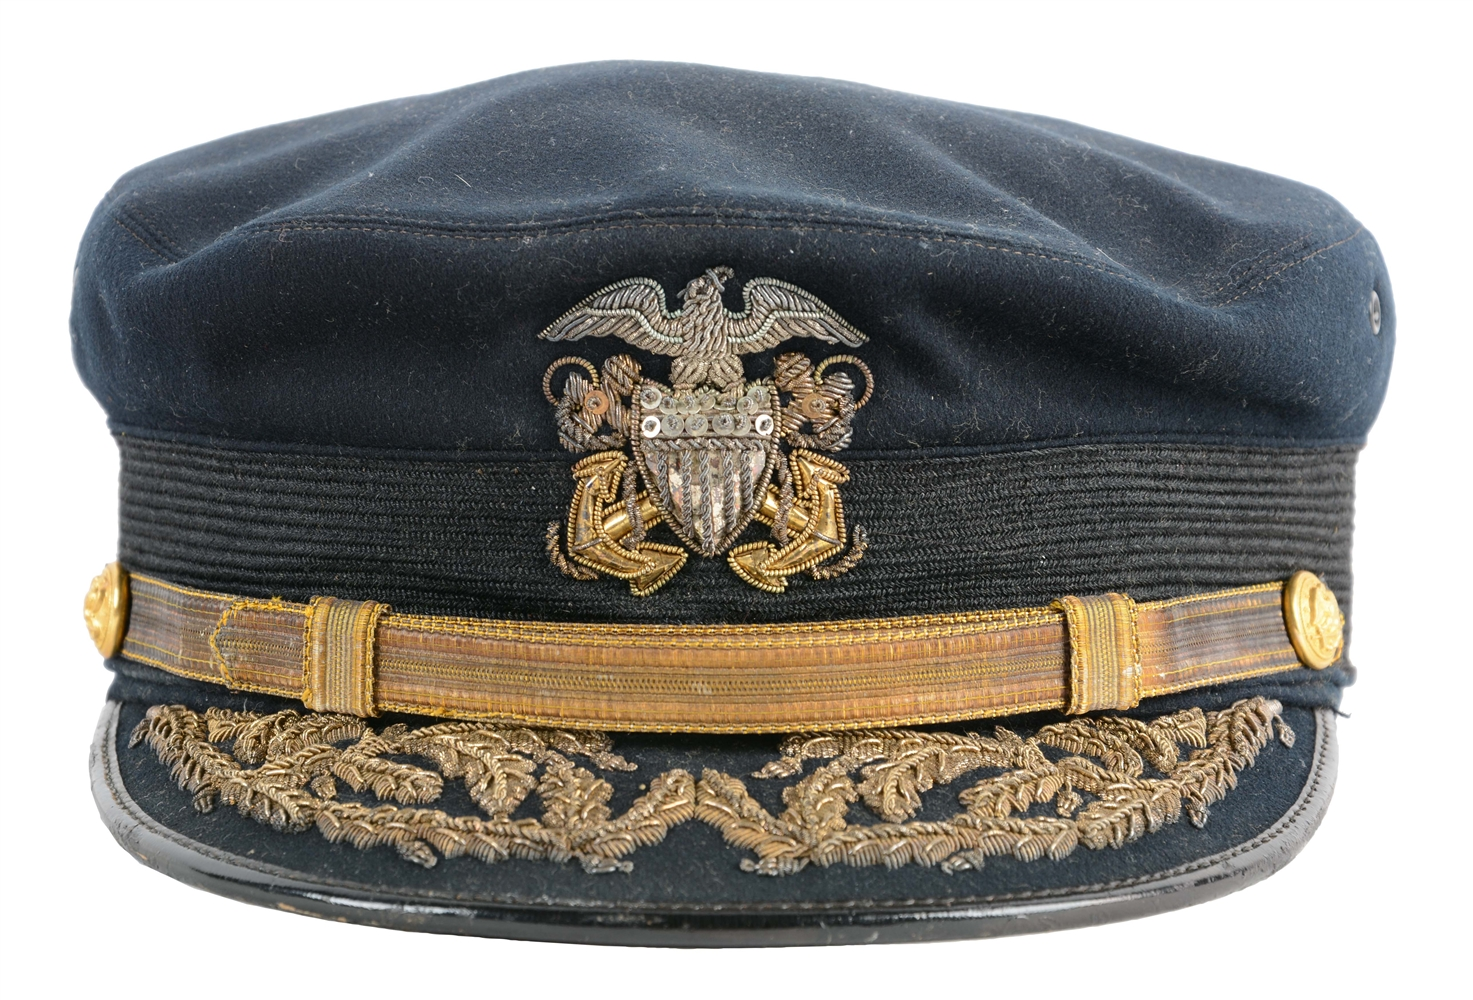 Identified Spanish-American War Period Rear Admirals Visor Cap.